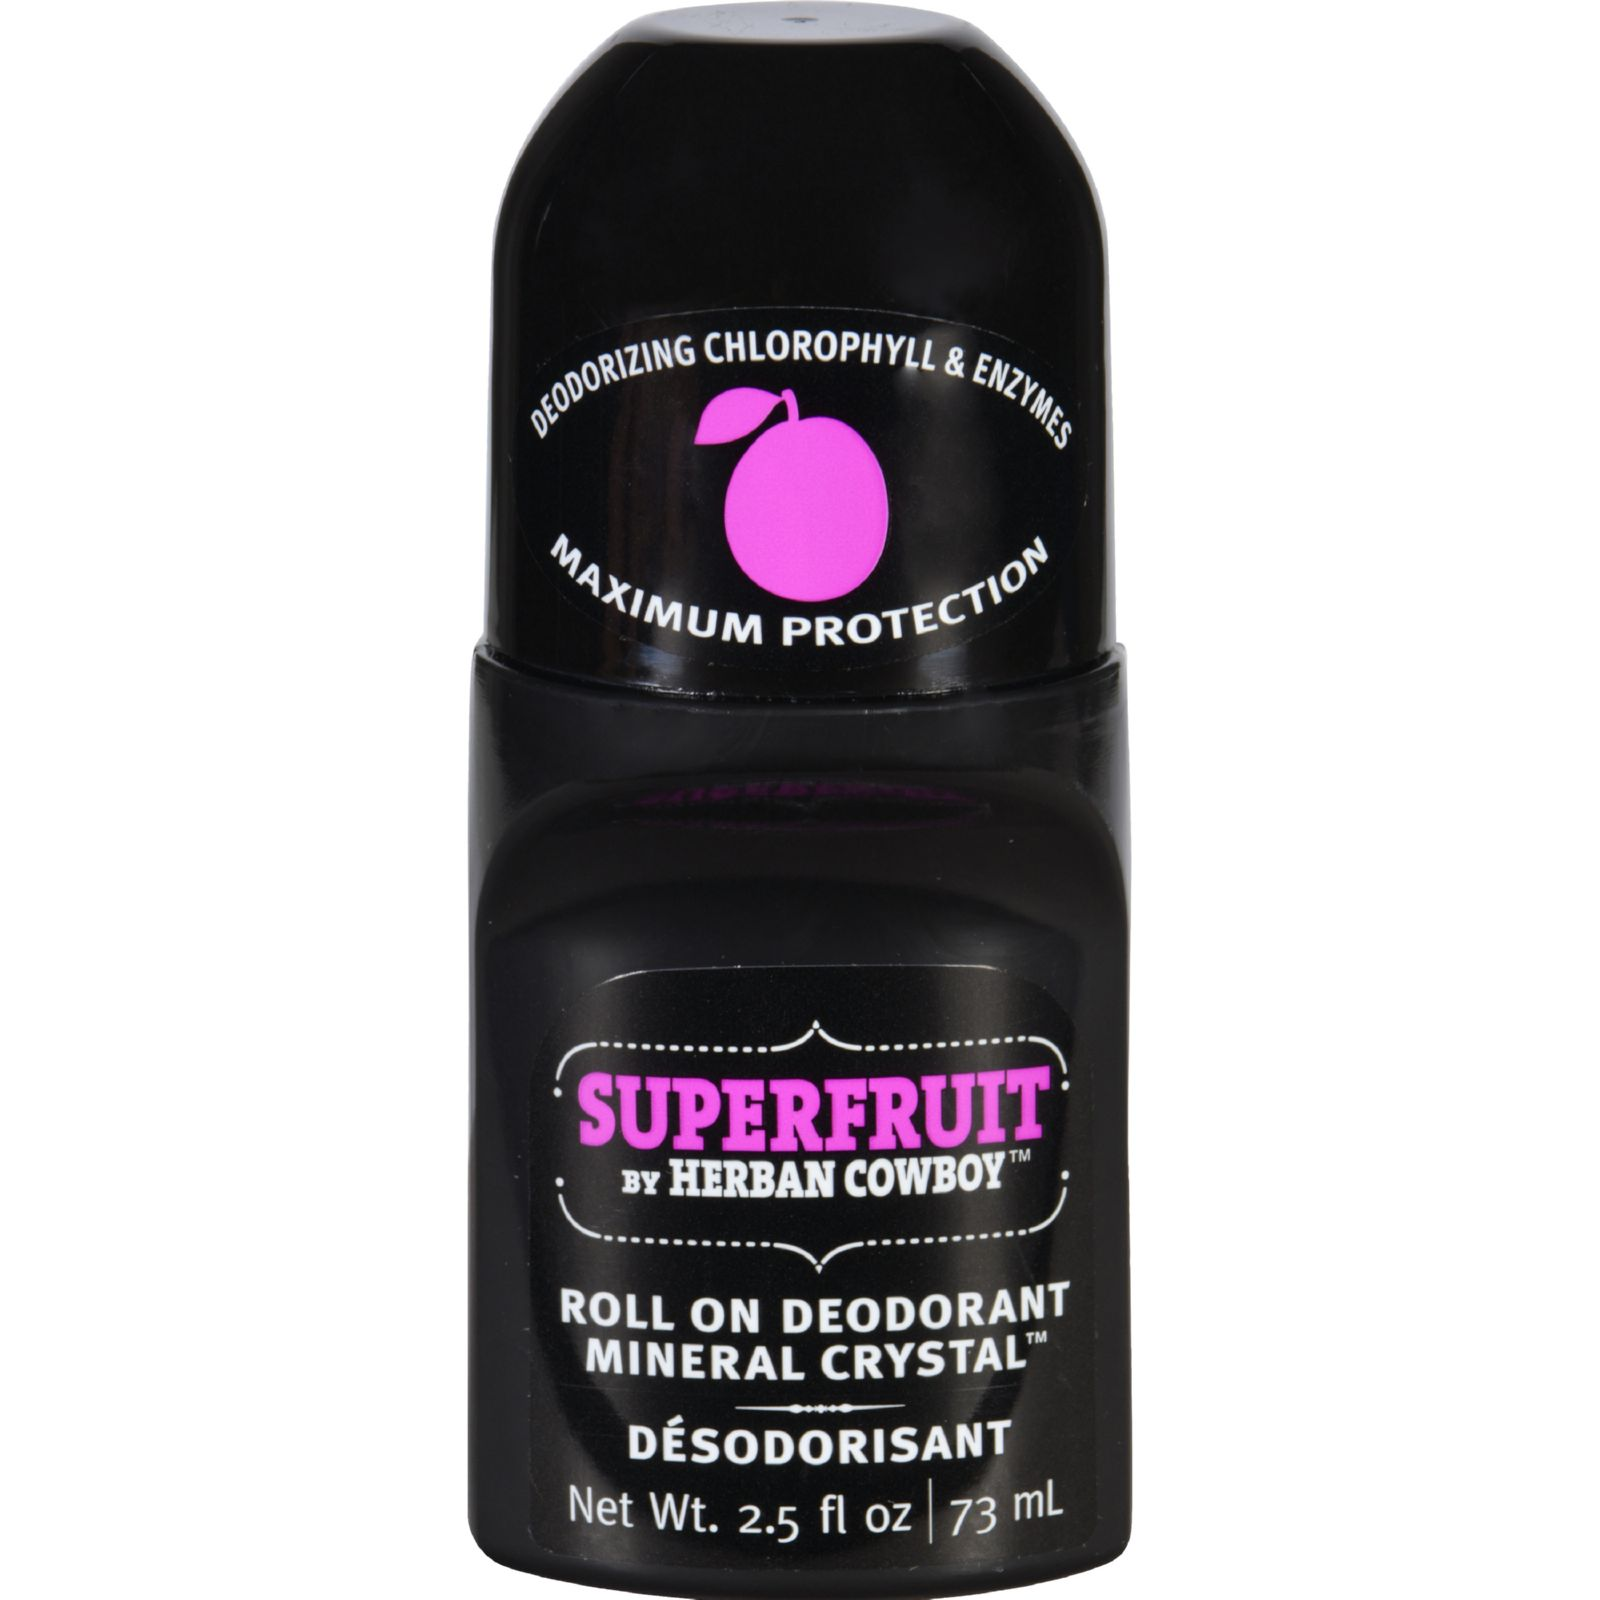 Herban Cowboy Deodorant  Roll On  Superfruit  2.5 oz